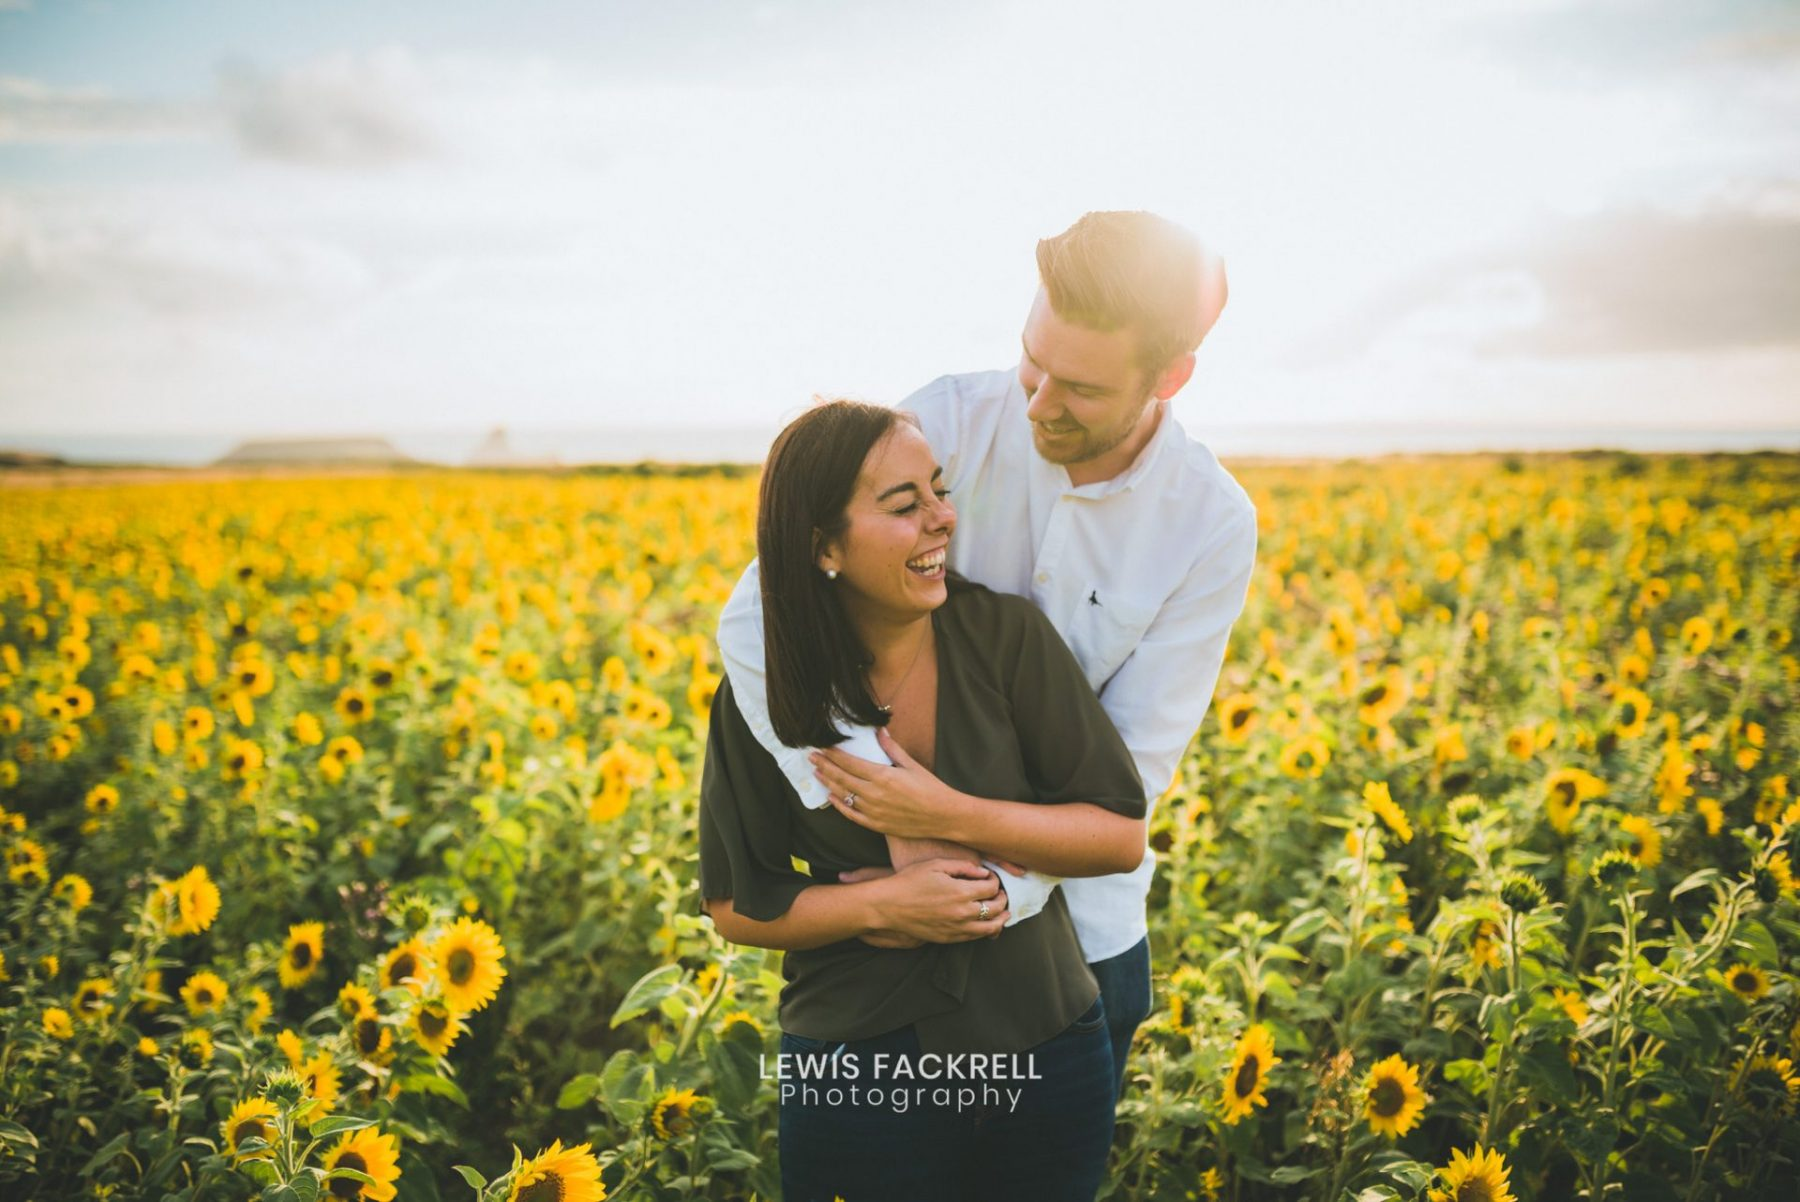 Gower wedding photography of sunflowers at Rhossili beach near old walls.